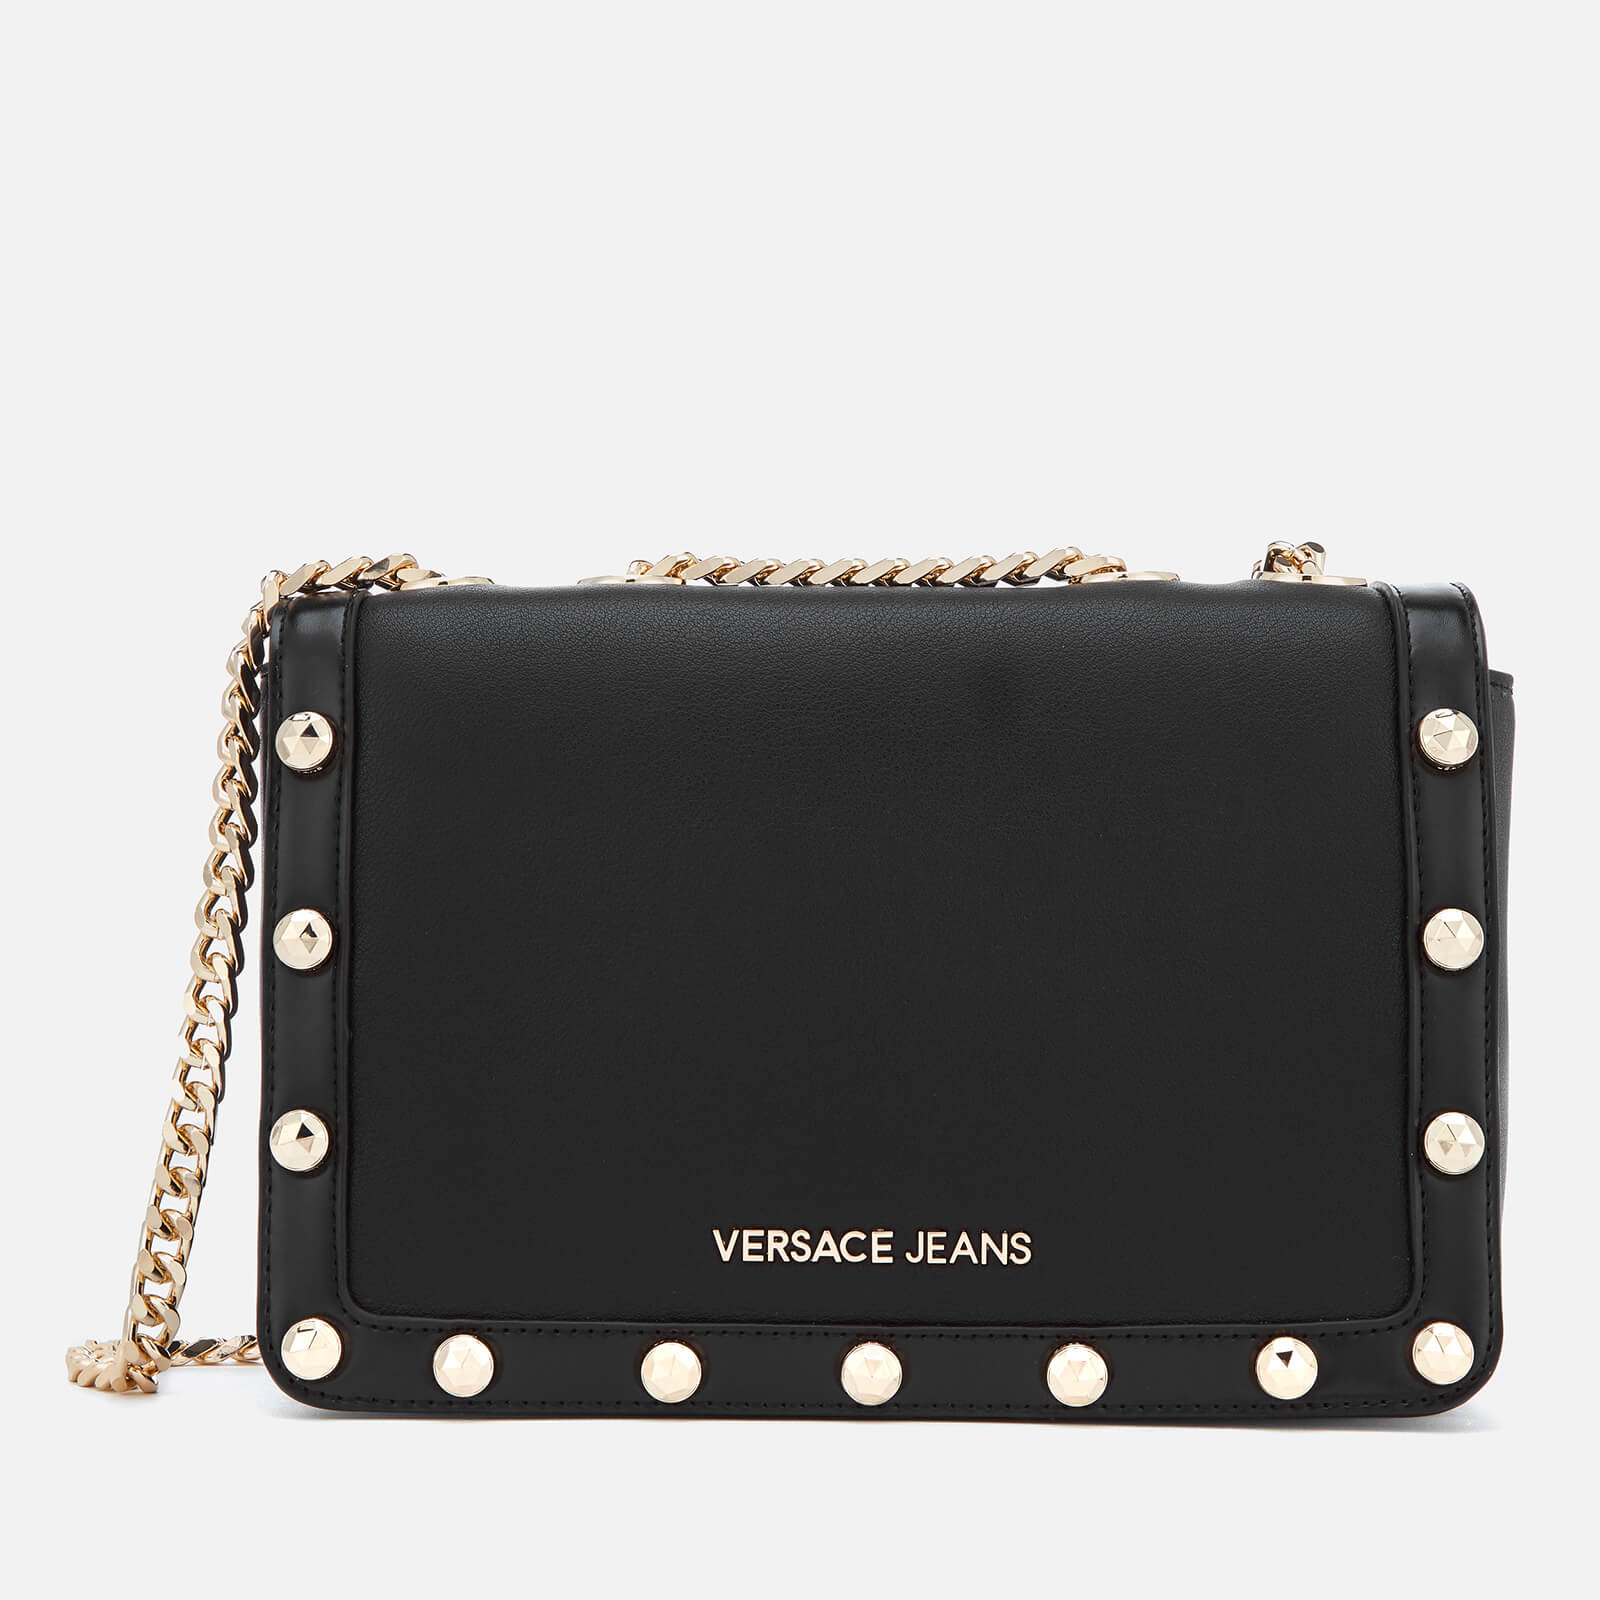 20b6b073df1 Versace Jeans Women's Logo Chain Handle Cross Body Bag - Black Clothing |  TheHut.com